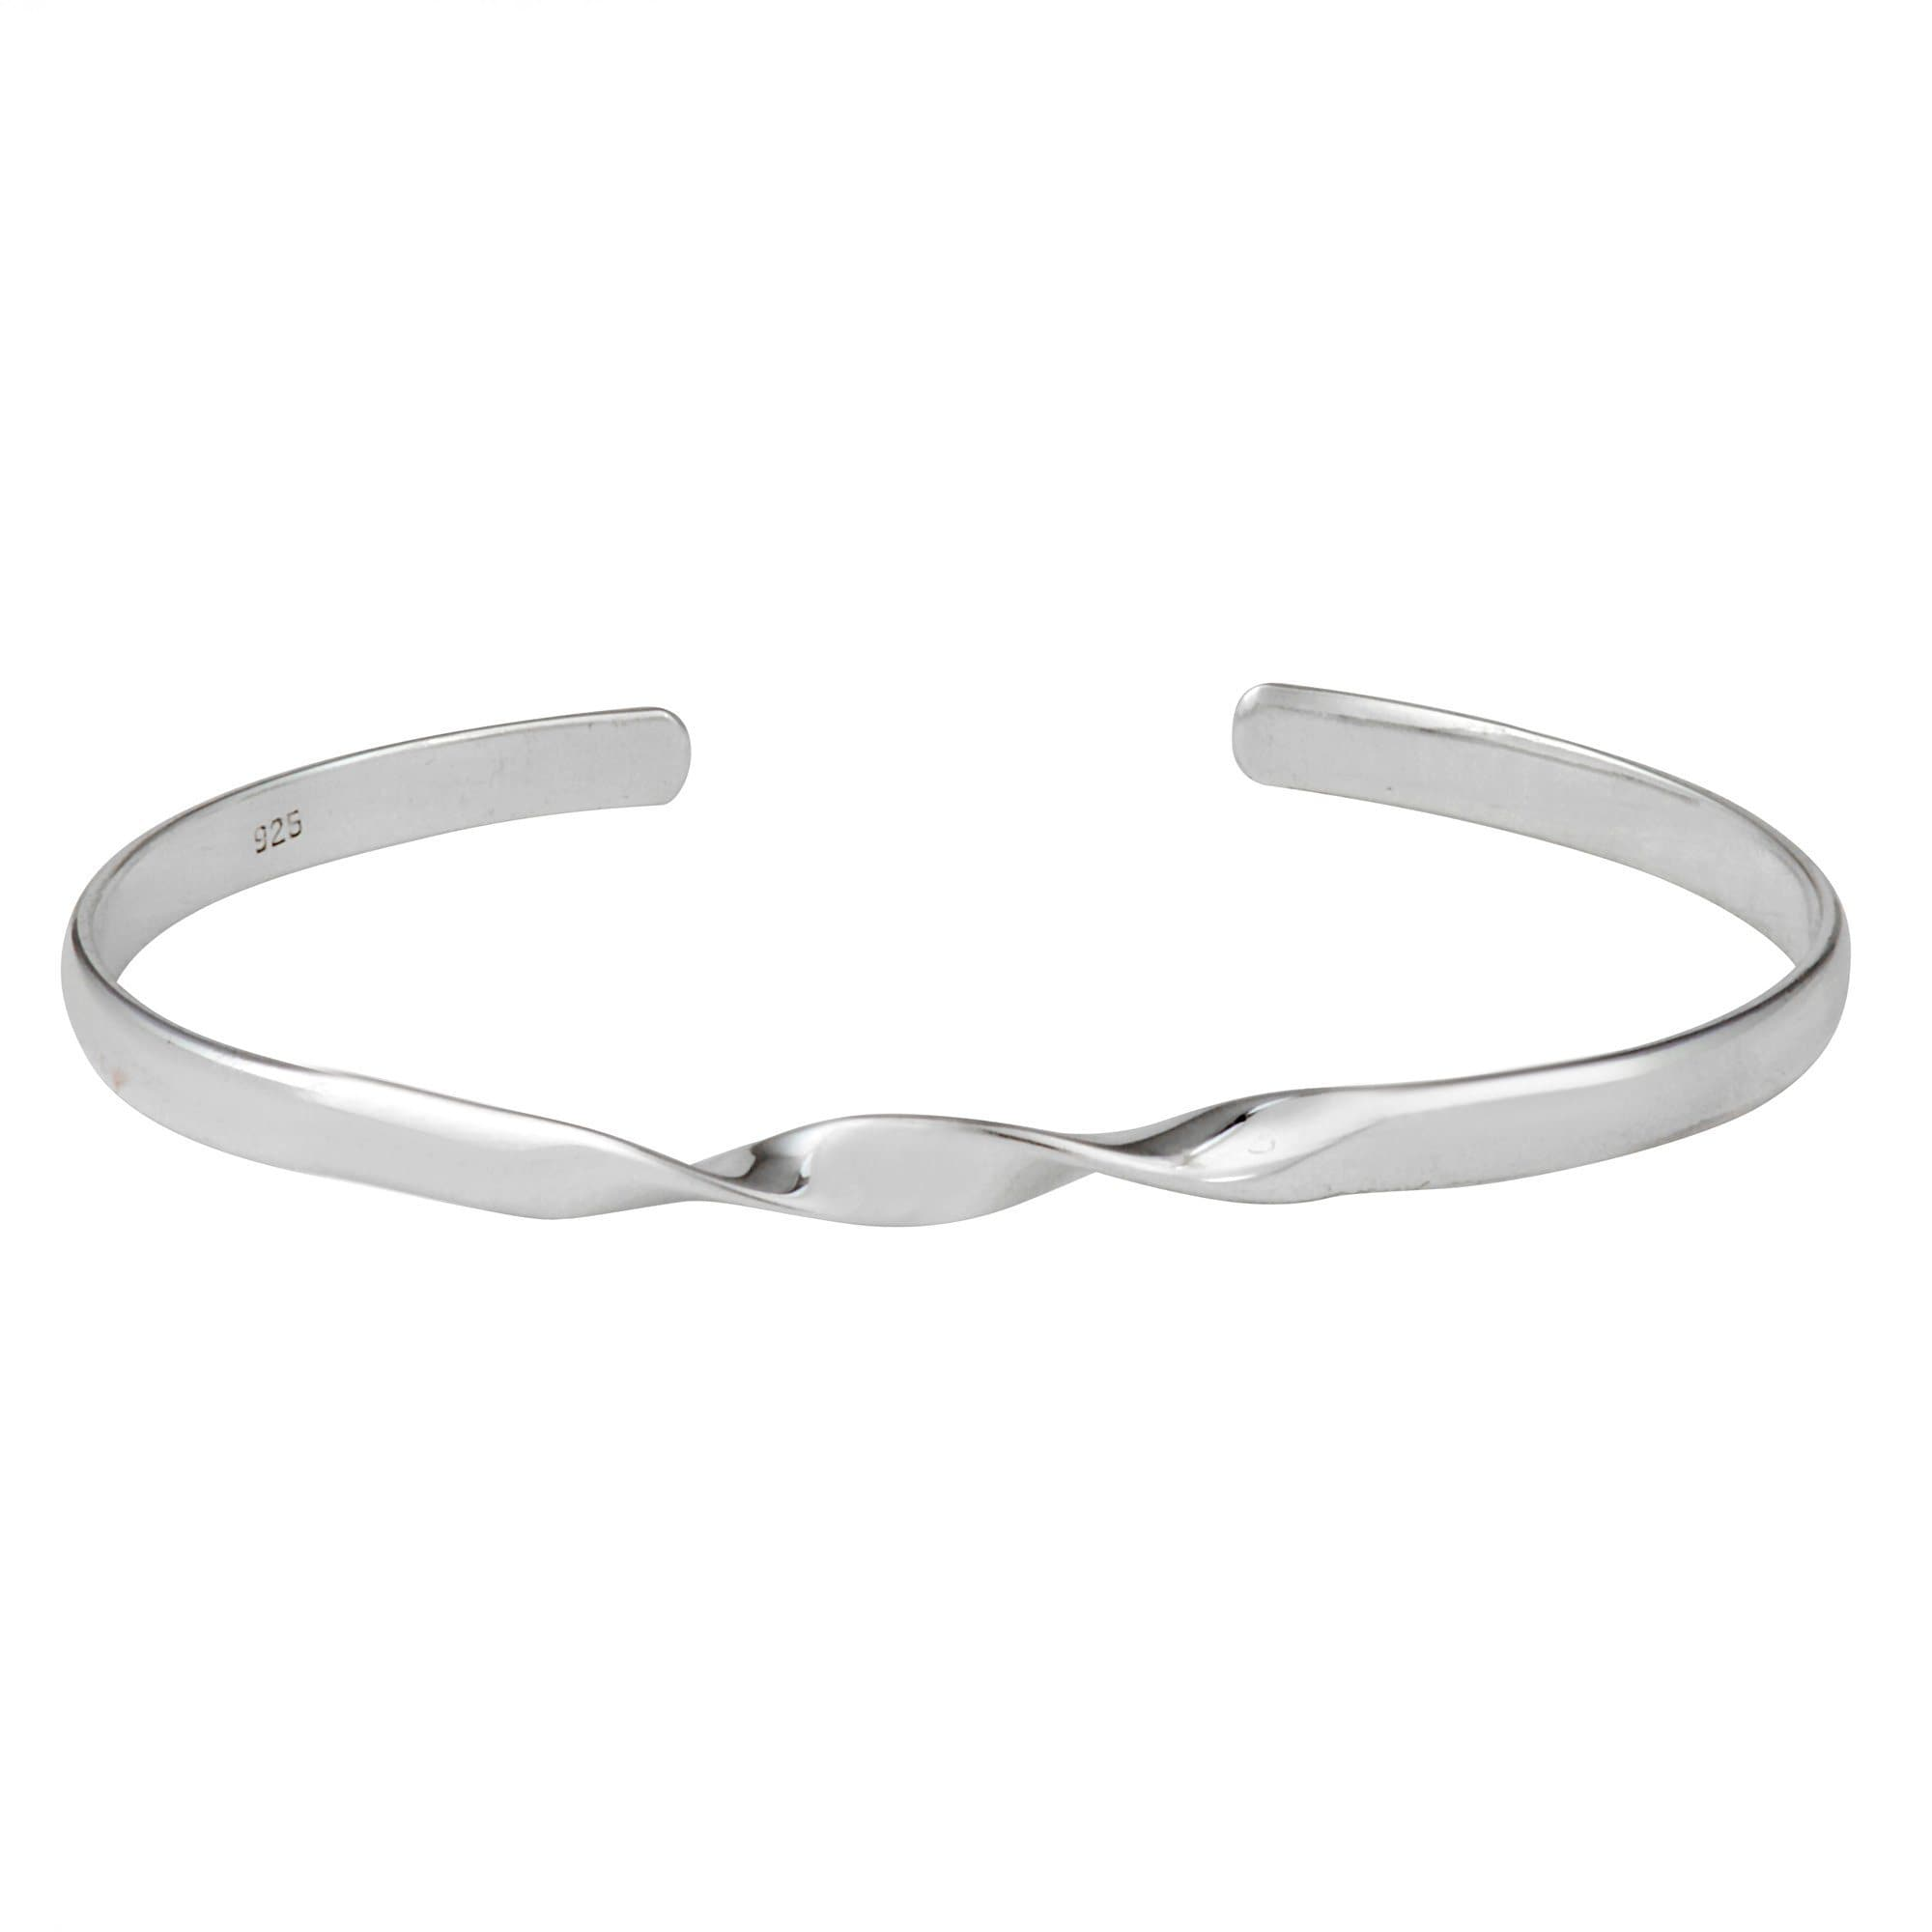 bands mm bangle polished bangles width bracelets p plain hammered weight length silver sterling grams